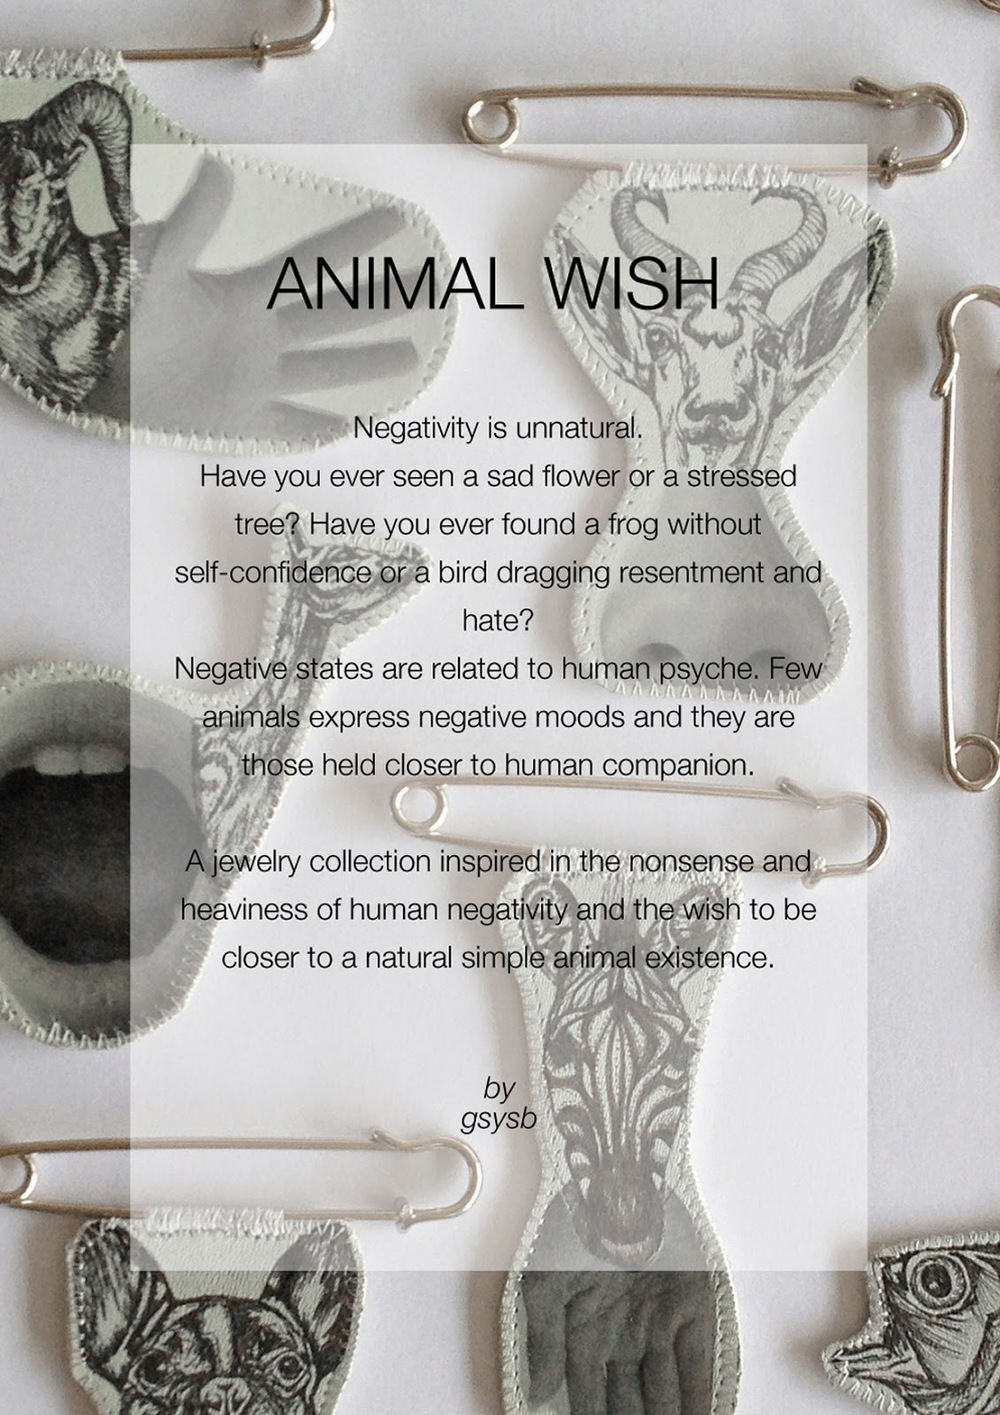 animal_wish(es)_gbriela_sanchez_11.jpg